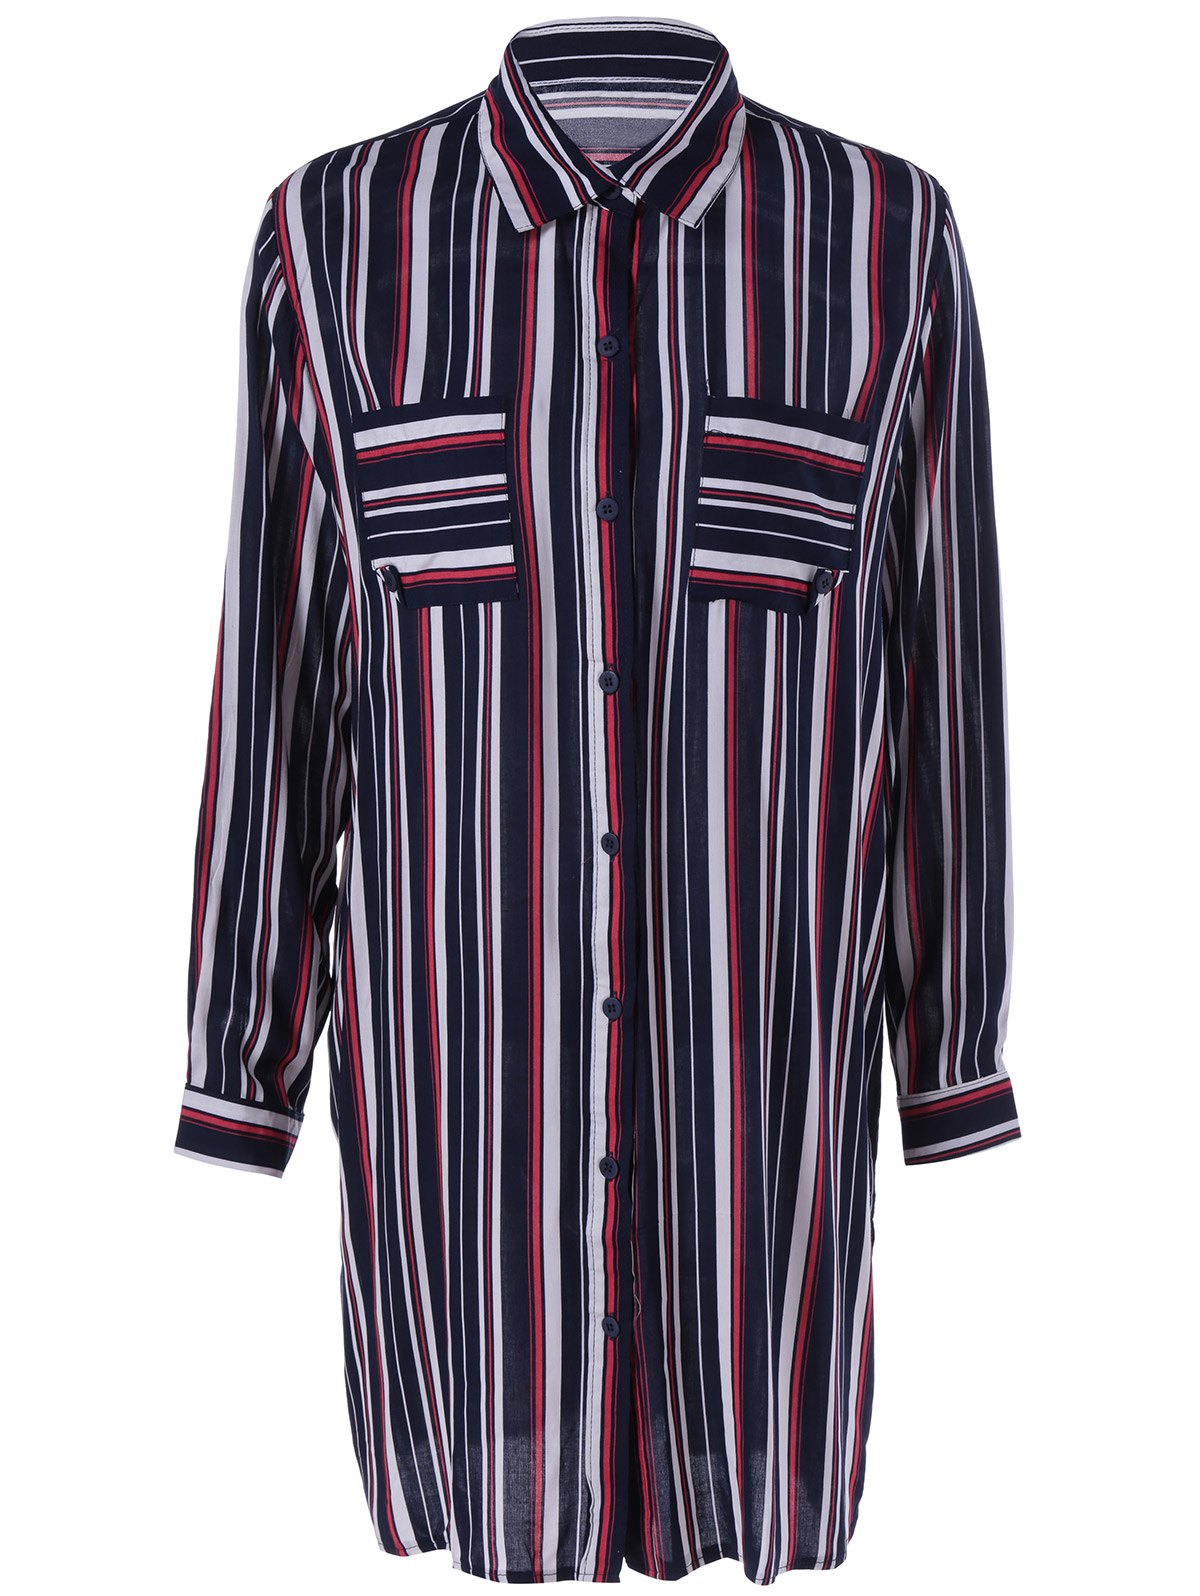 Loose-Fitting Long Sleeves Shirt Collar Slit Striped Shirt Dress For Women